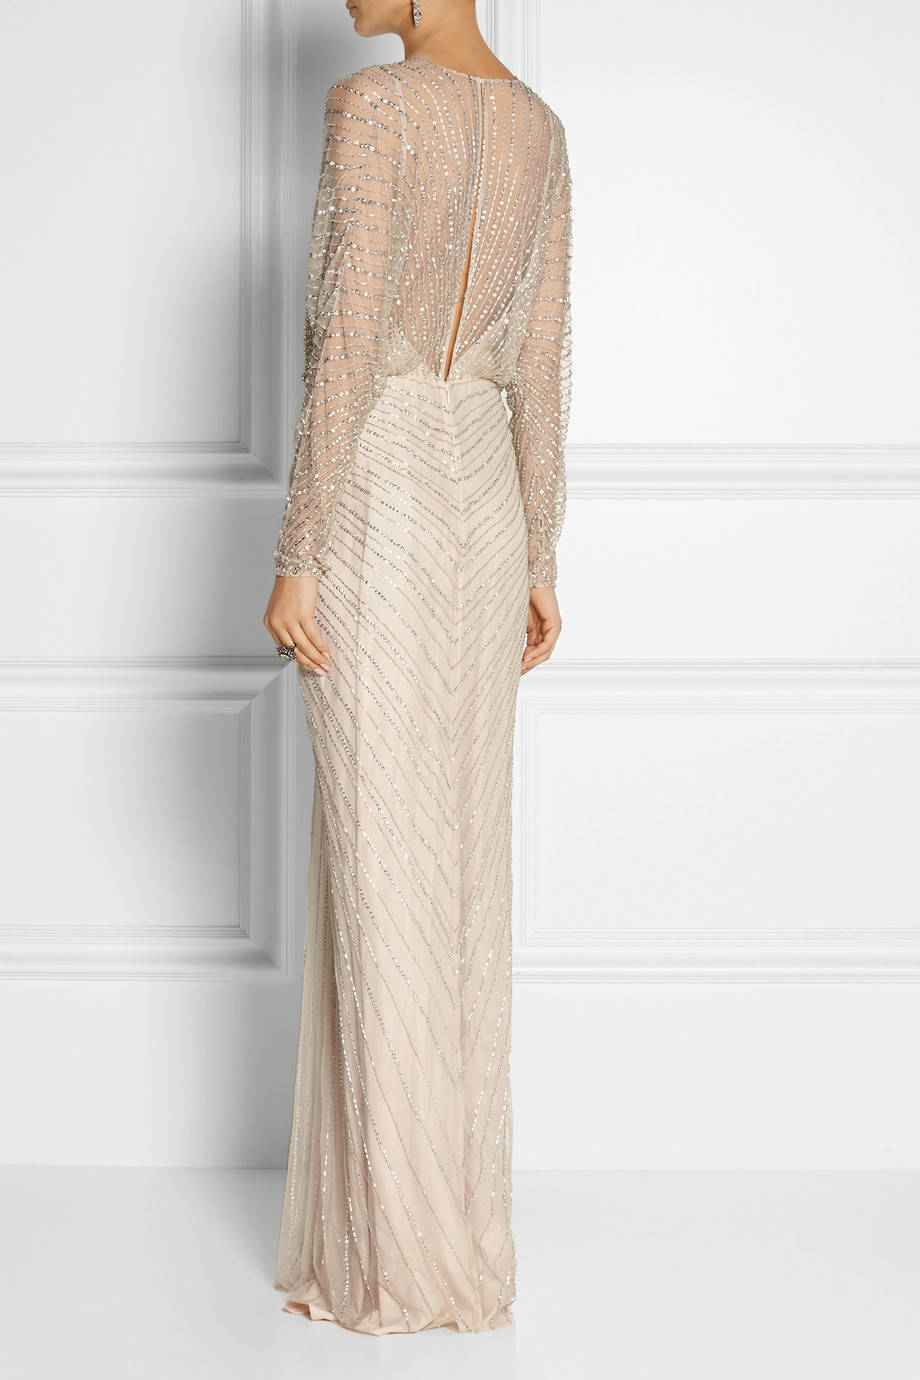 Lyst - Jenny Packham Beaded Tulle Gown in Metallic